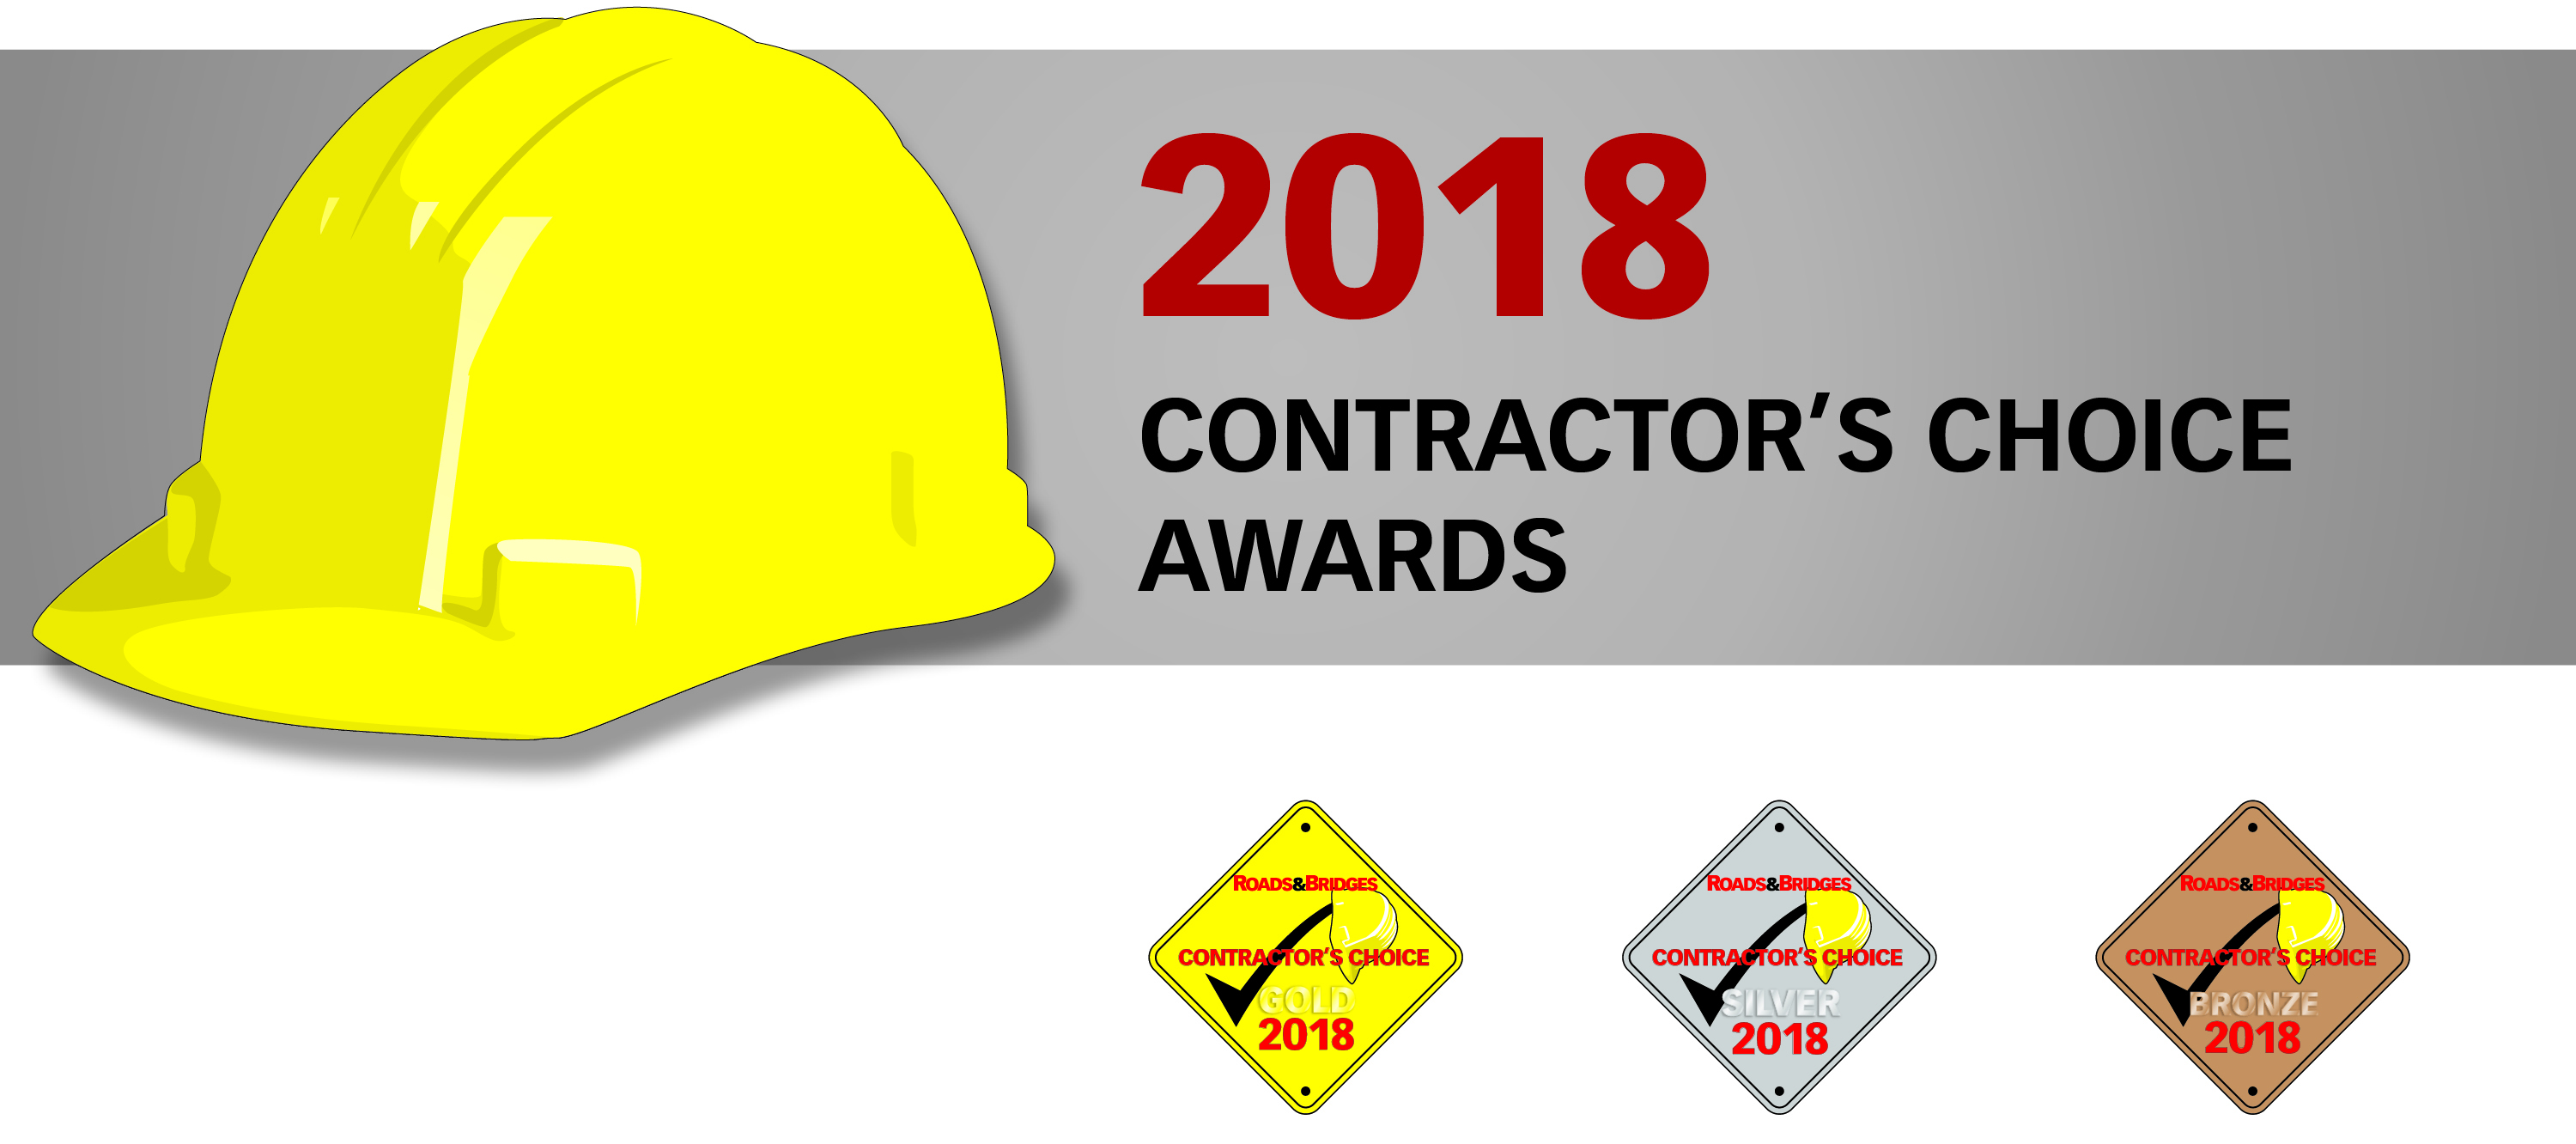 Contractors Choice Awards 2018